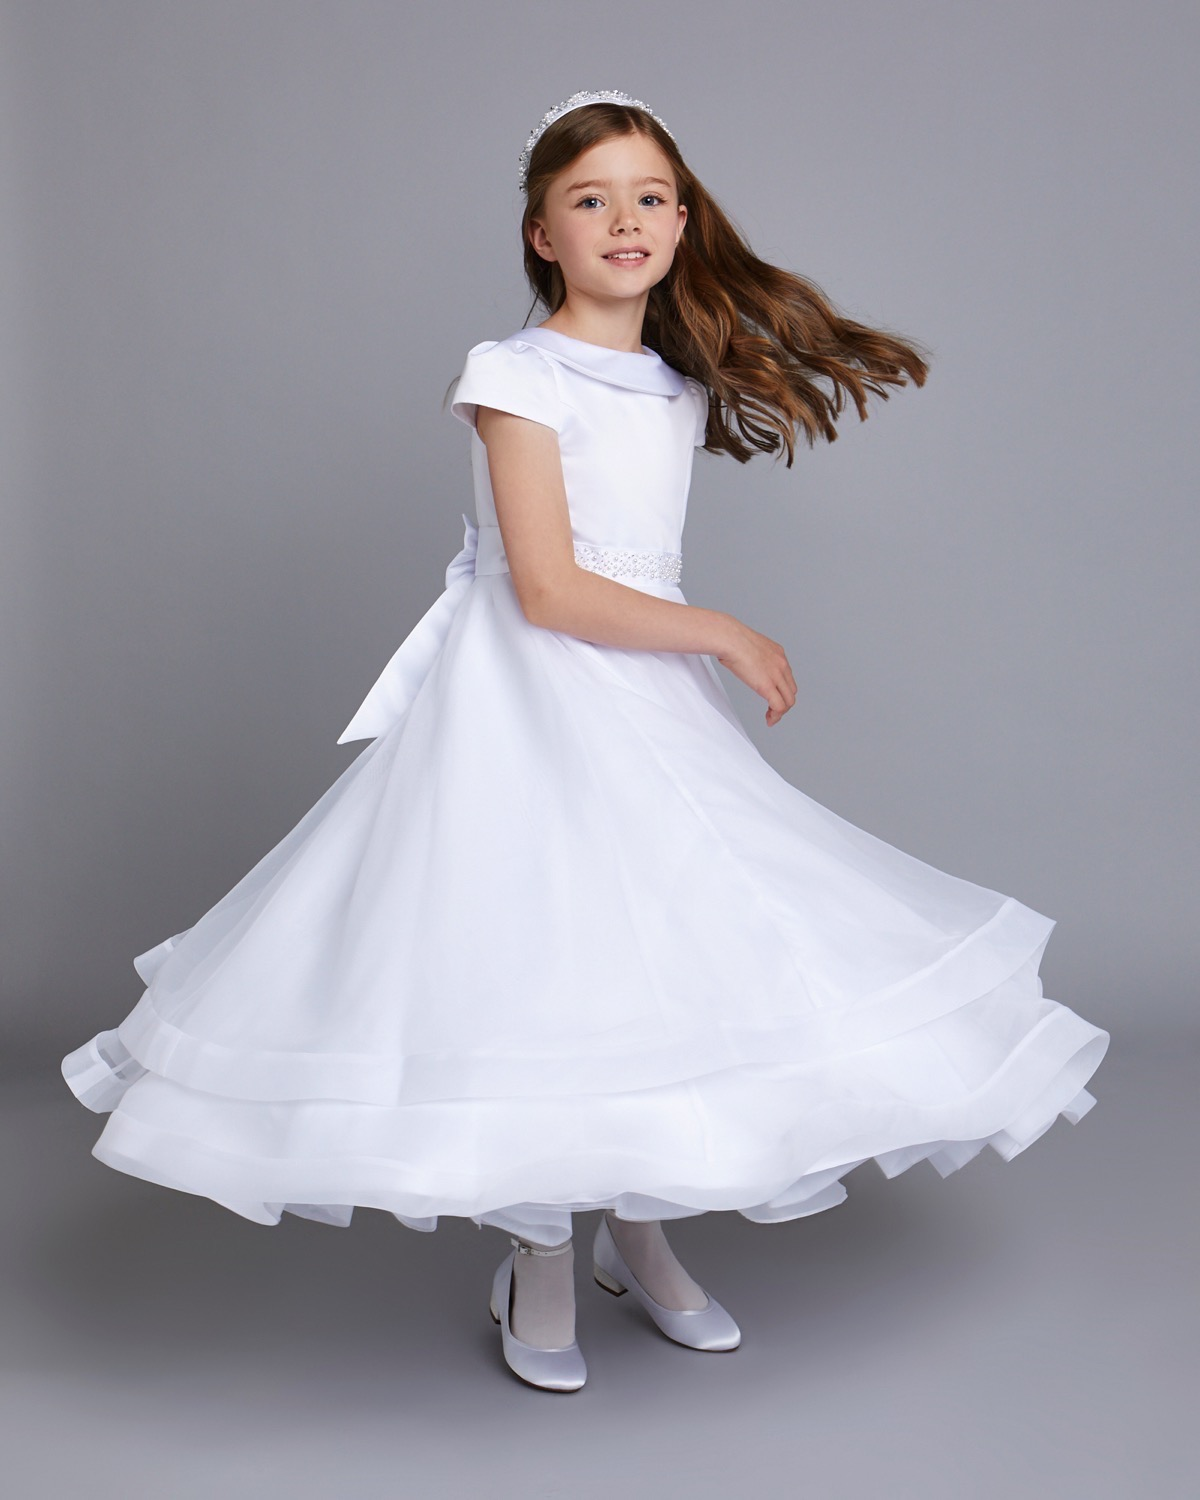 dunnes stores holy communion dresses Off 18   www.bashhguidelines.org